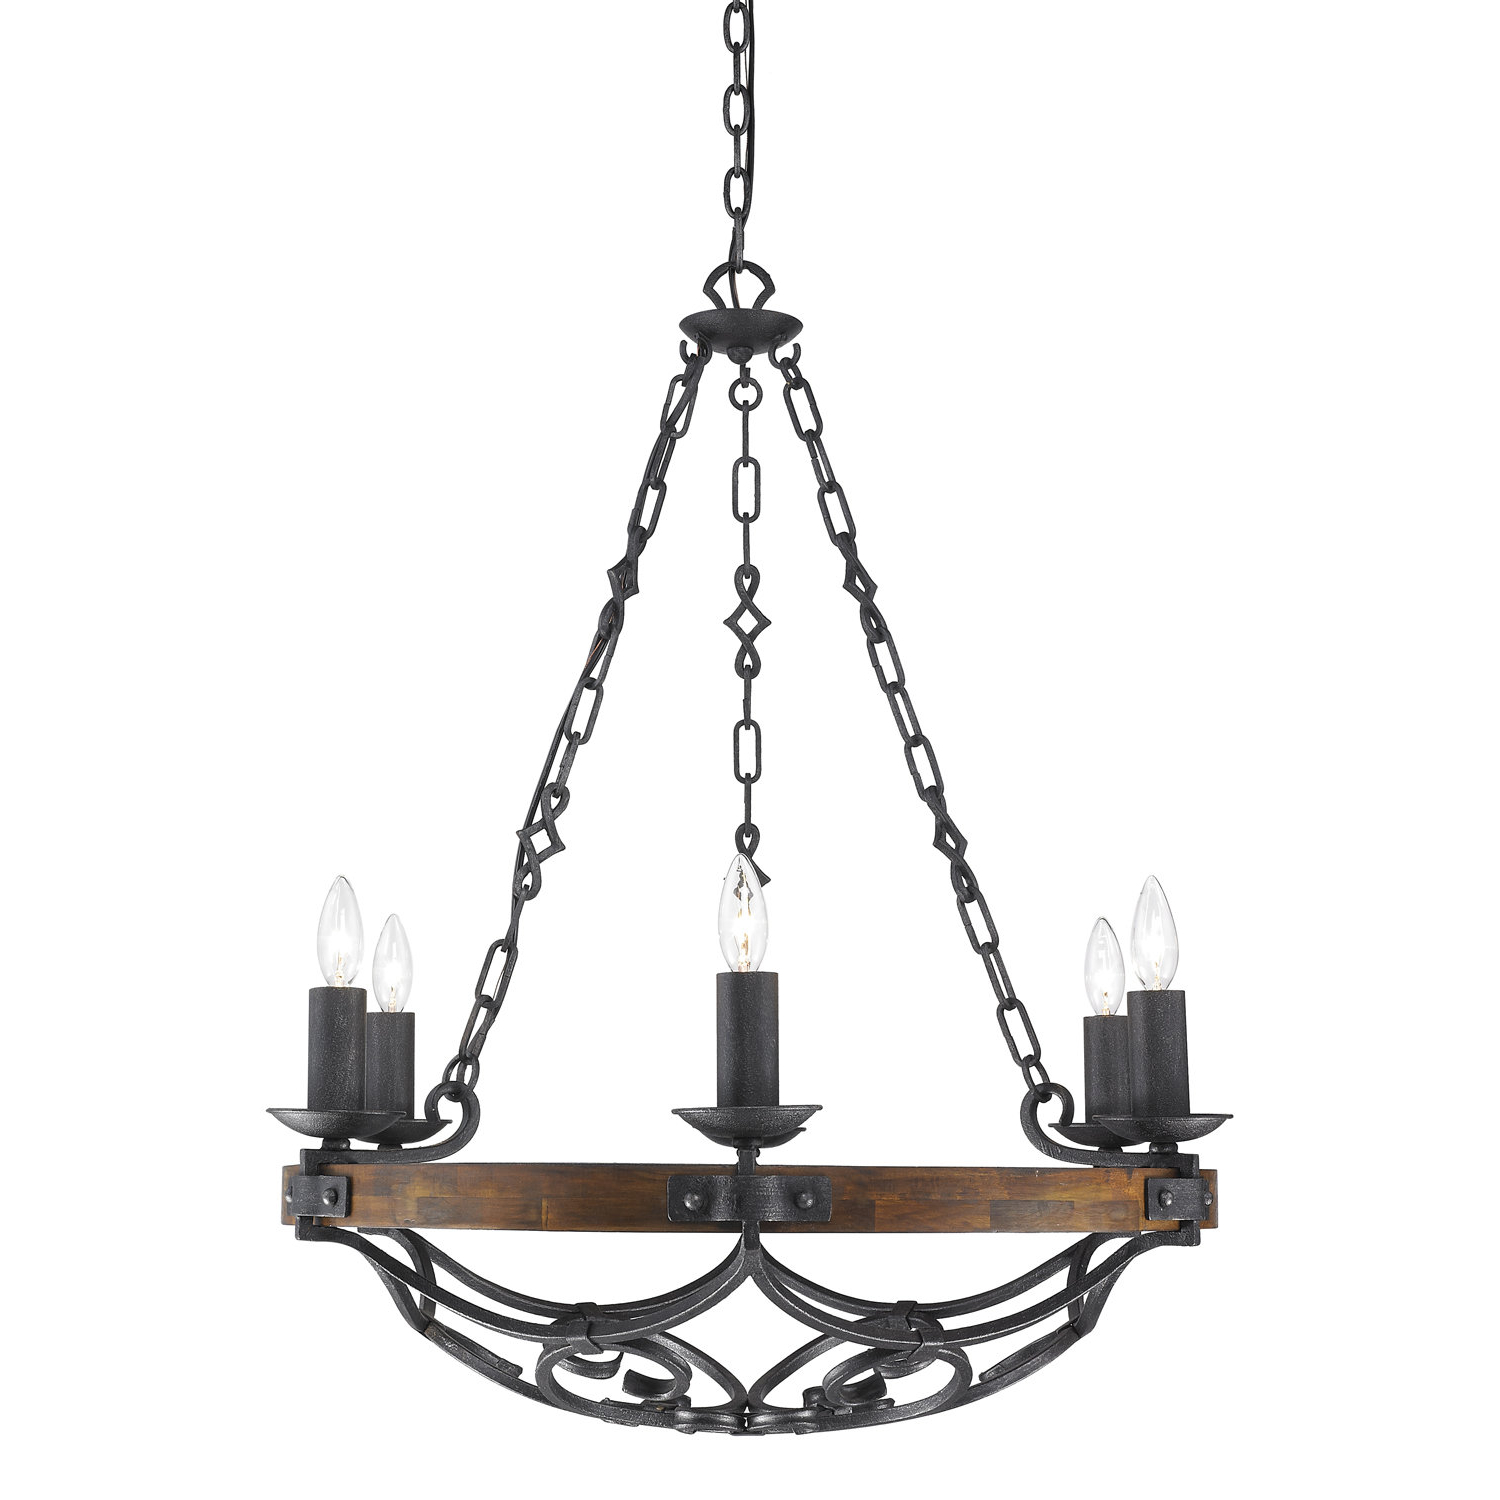 Best and Newest Janette 5-Light Wagon Wheel Chandeliers within Bacchus 6-Light Wagon Wheel Chandelier